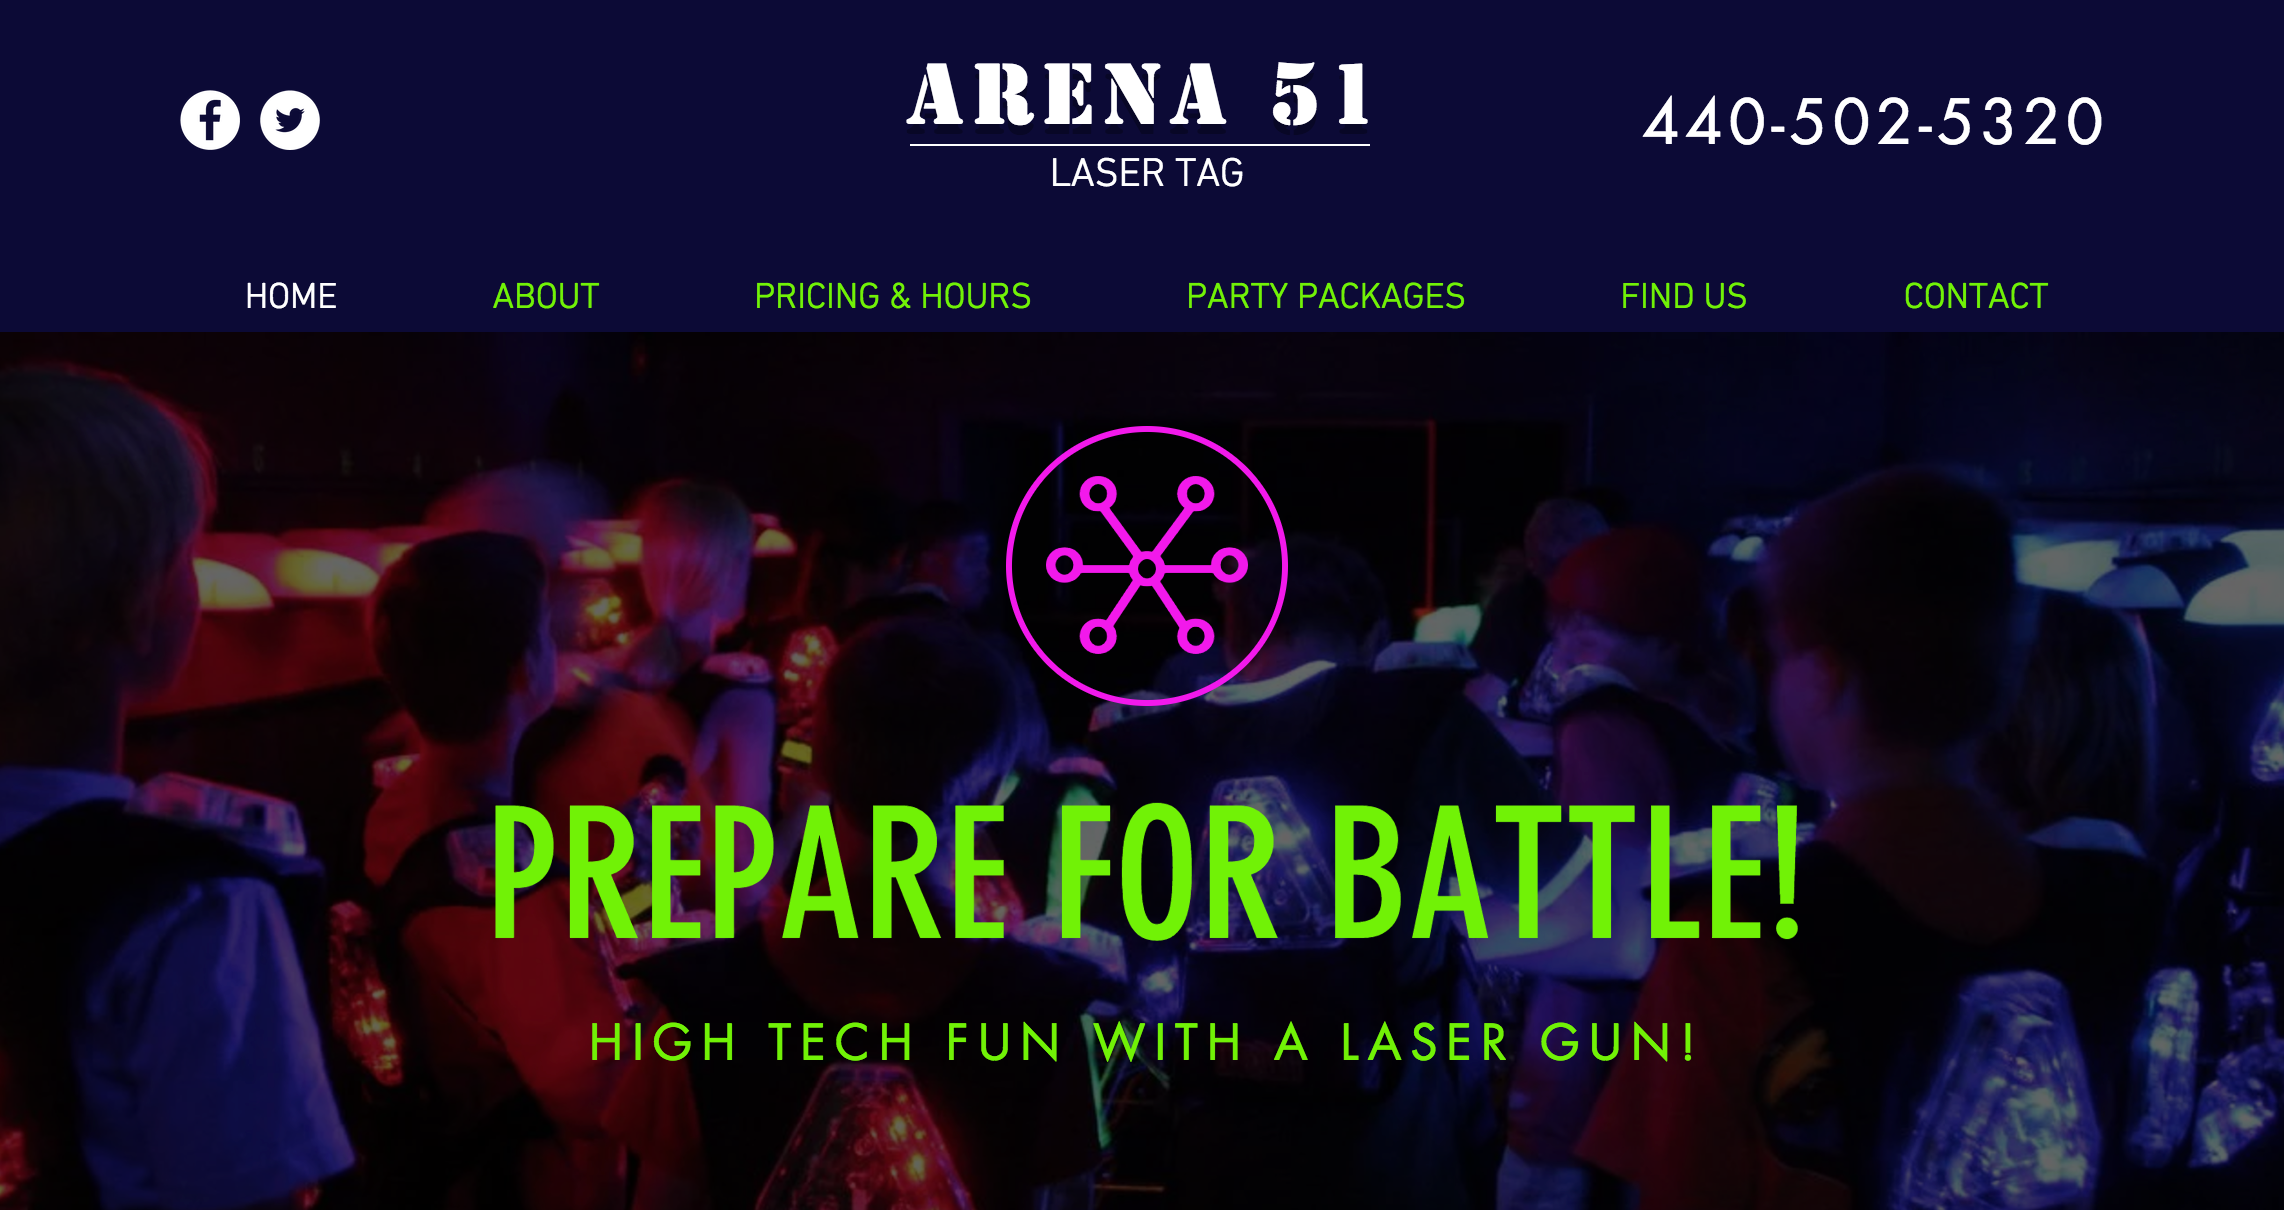 Laser Tag Center Arcade | Cleveland, Ohio | Arena 51 Laser Tag